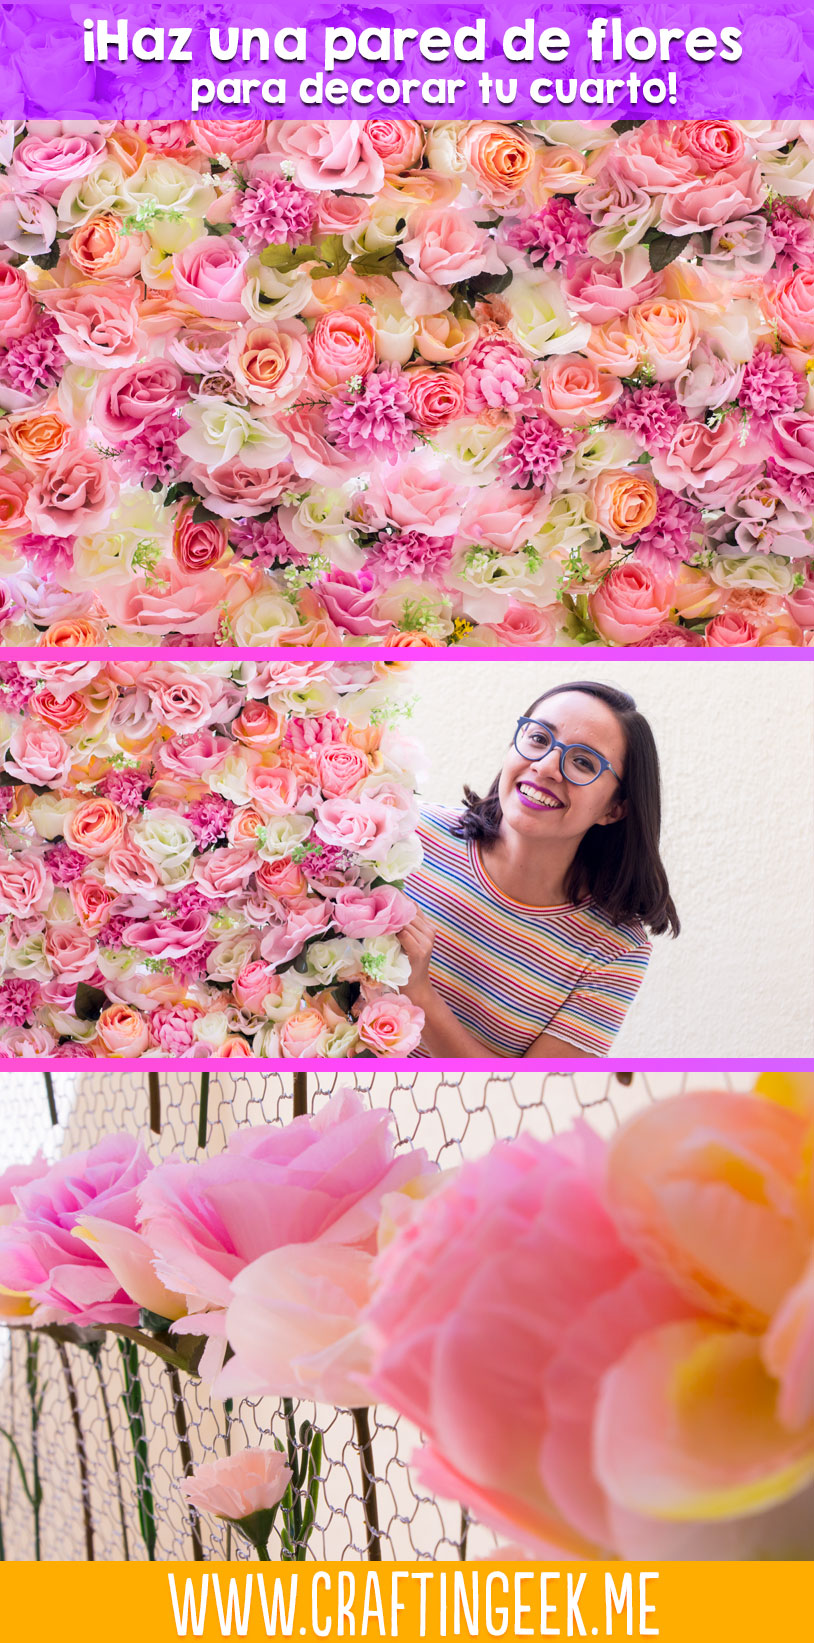 Haz una pared de flores para decorar tu cuarto craftingeek - Como empapelar una pared ...